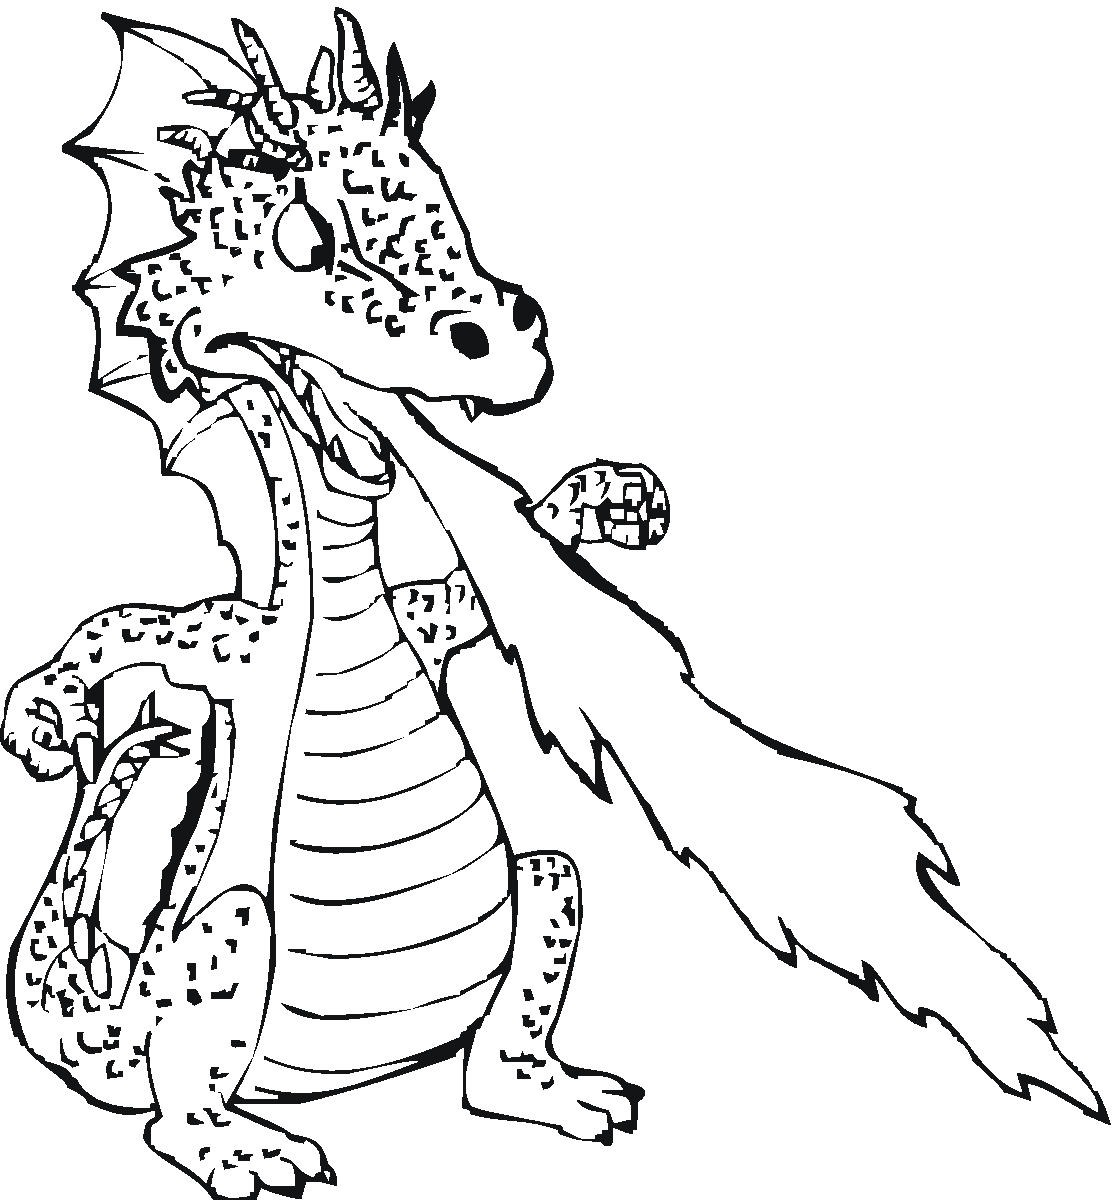 5 Images of Horror Printable Coloring Pages Of Dragons